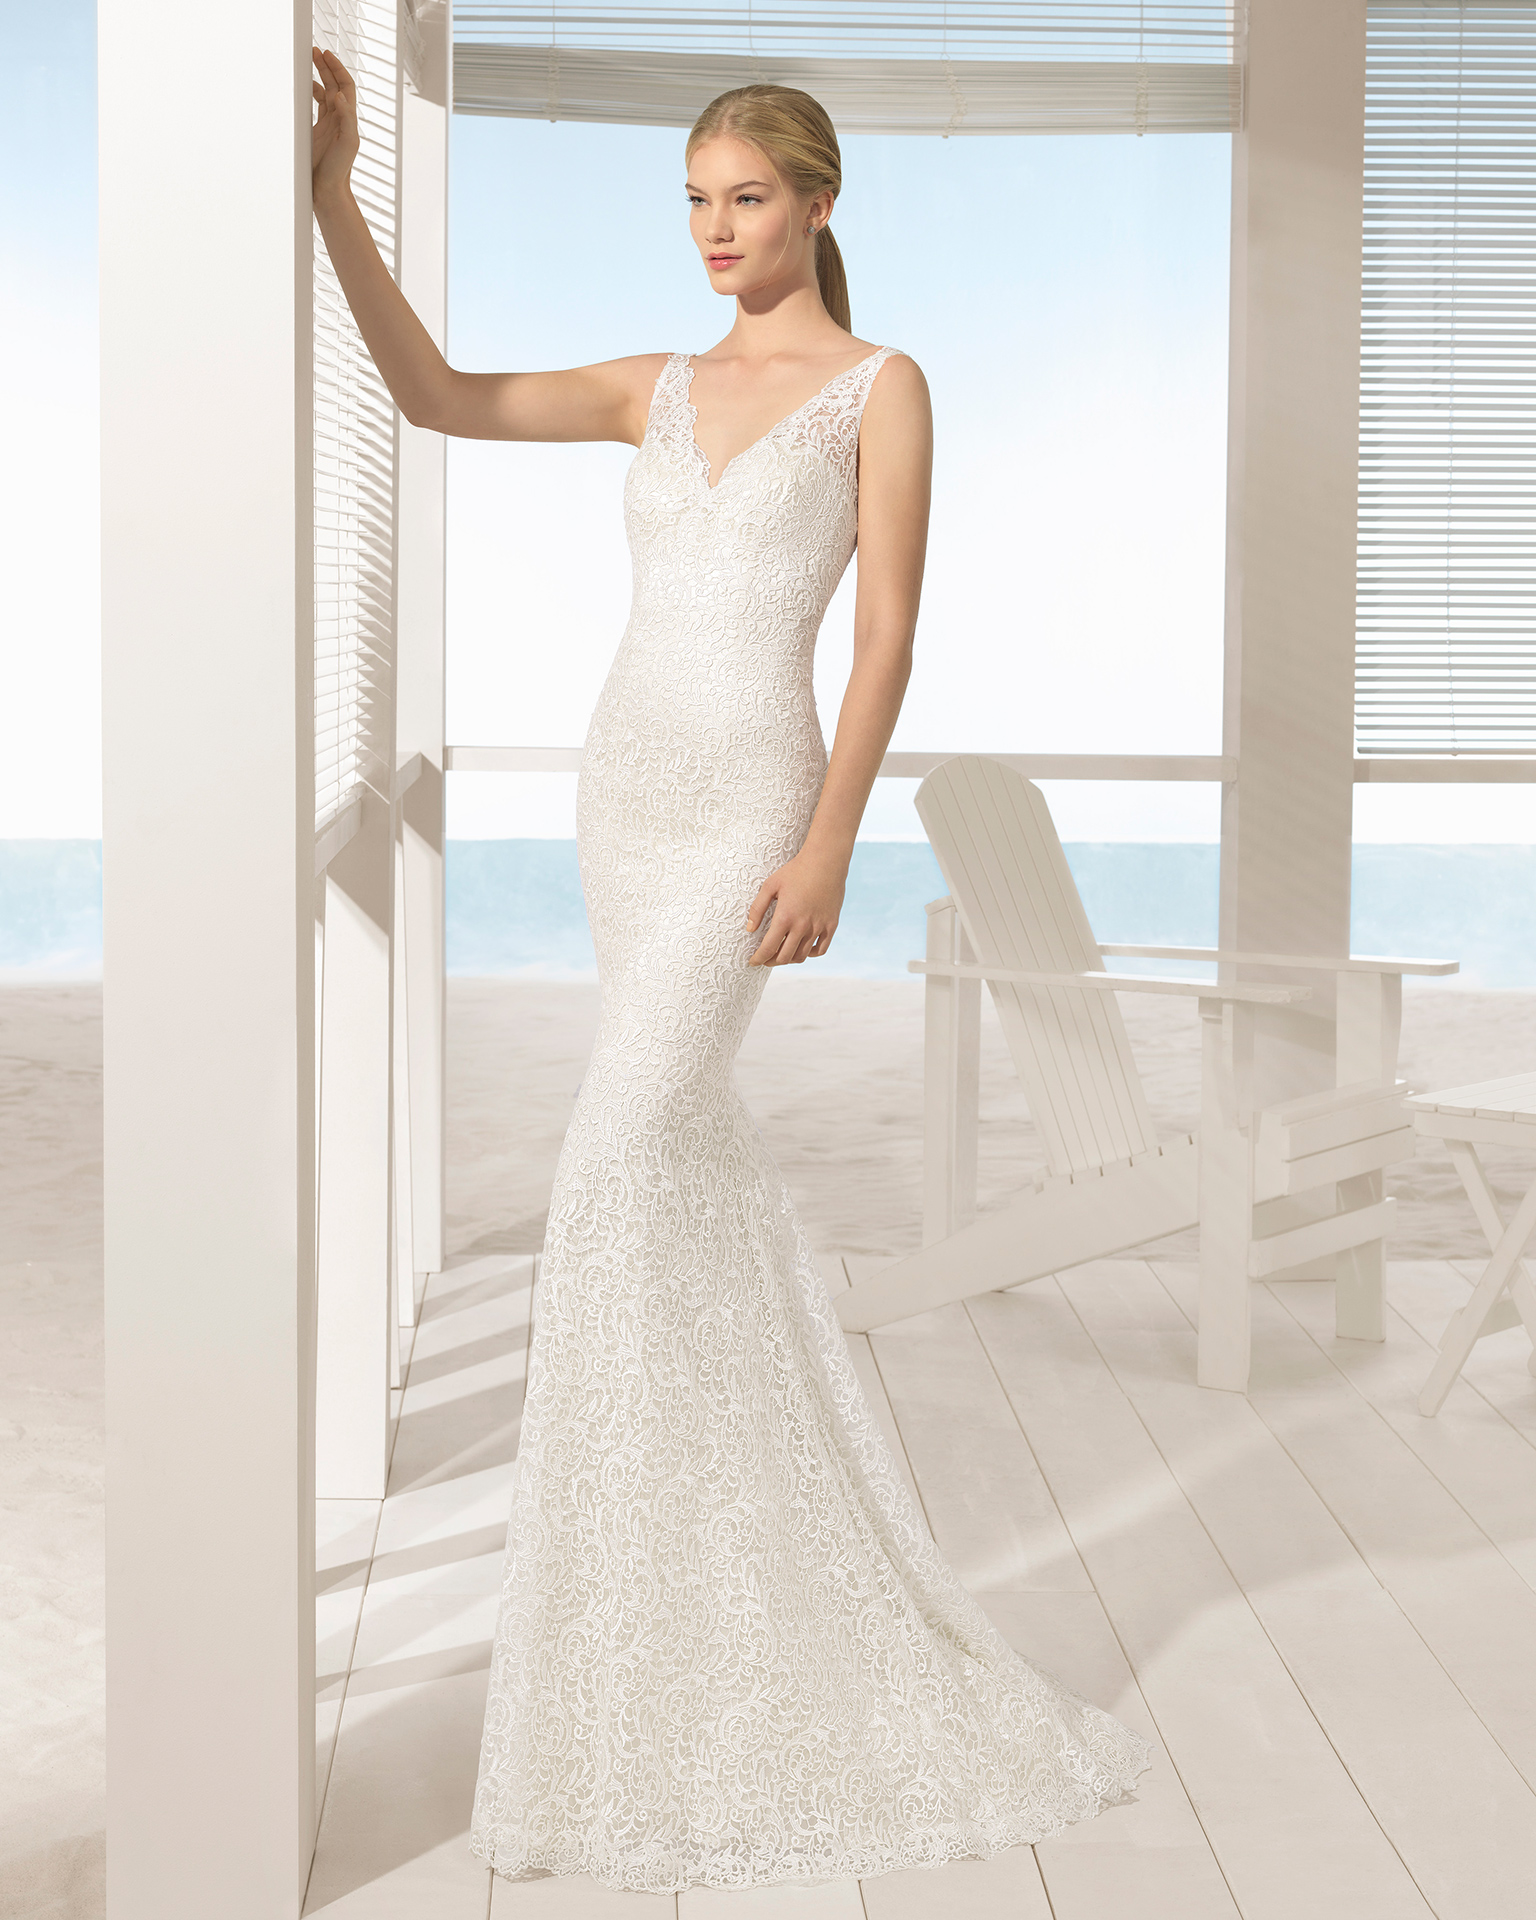 Mermaid-style guipure lace wedding dress with low back, in ivory.